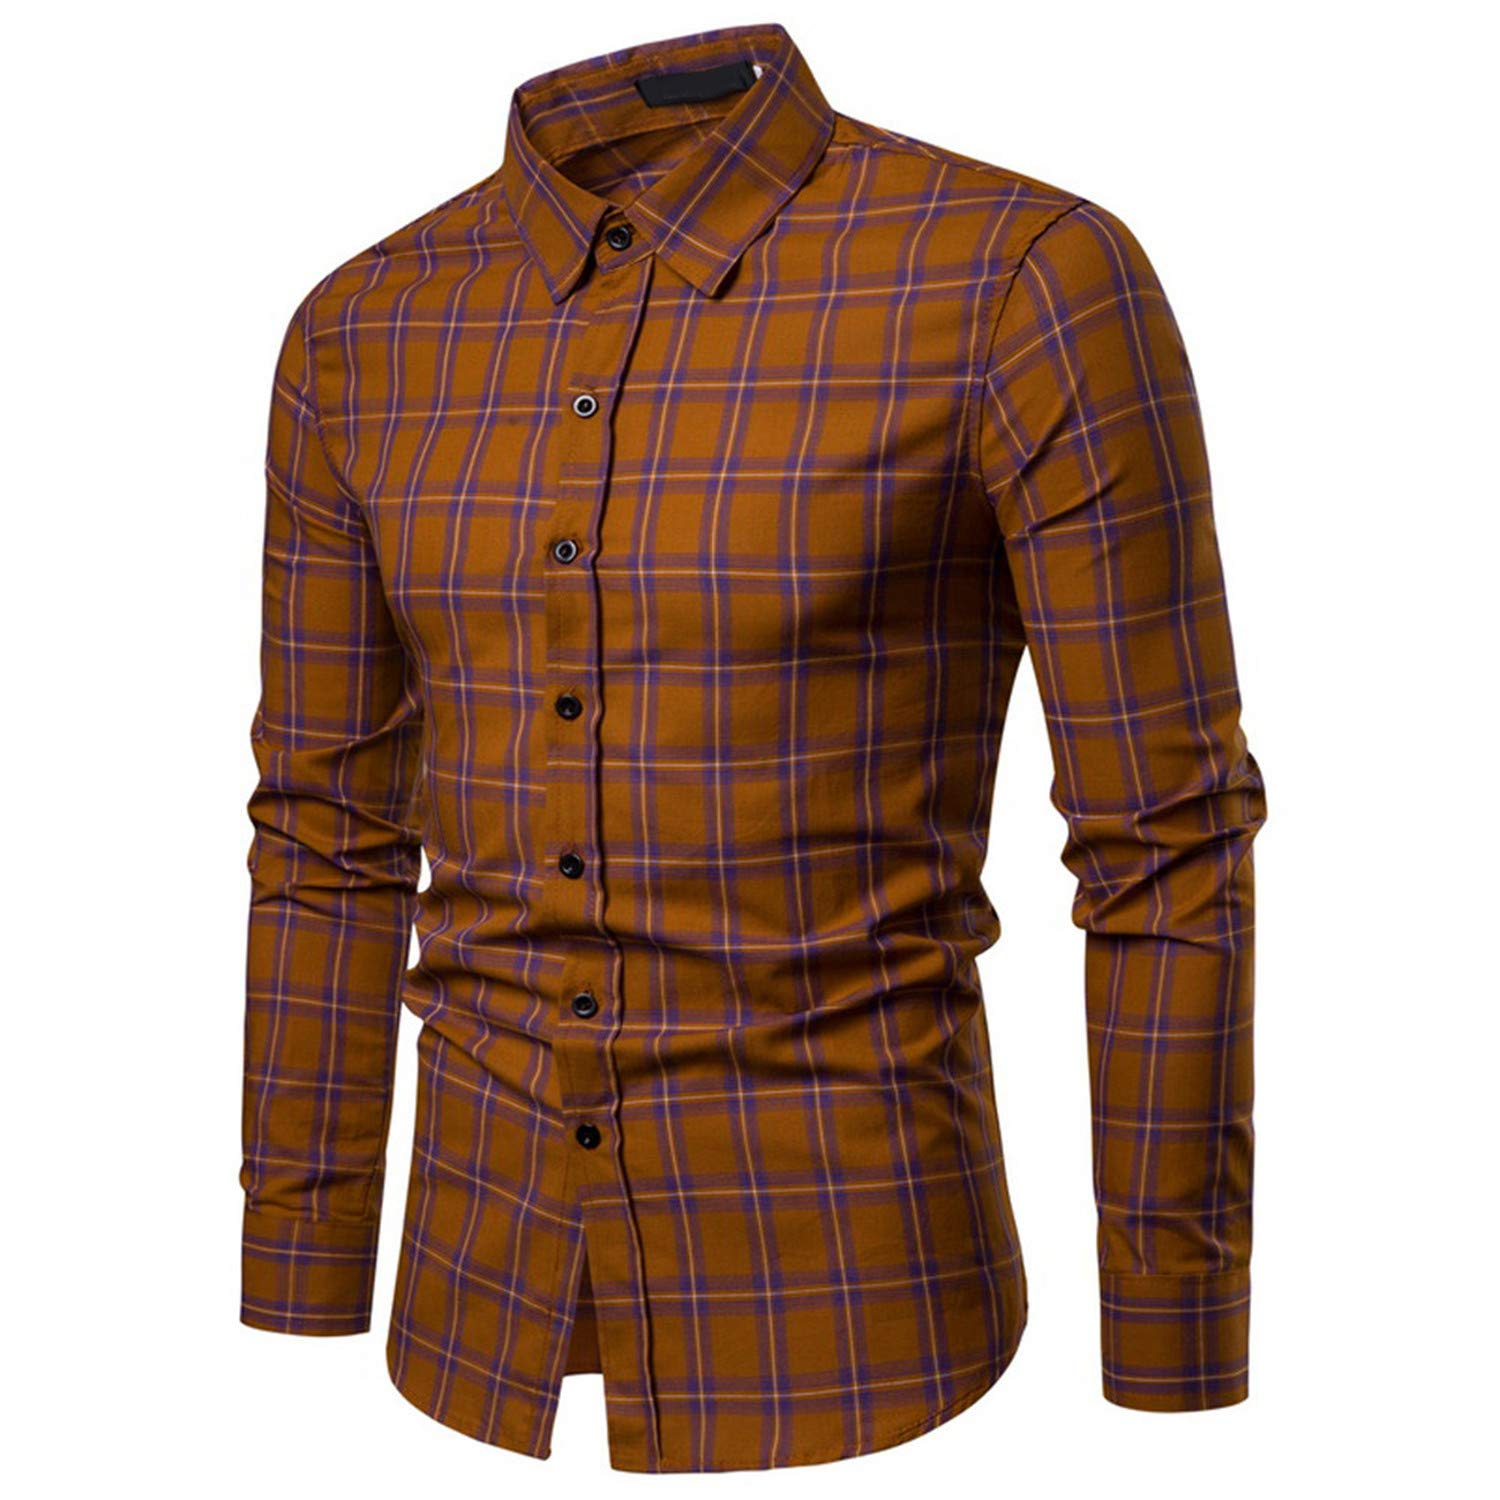 Mens Casual Long Sleeved Shirt Fashion Elegant Business Office Work Wear Blouse Green